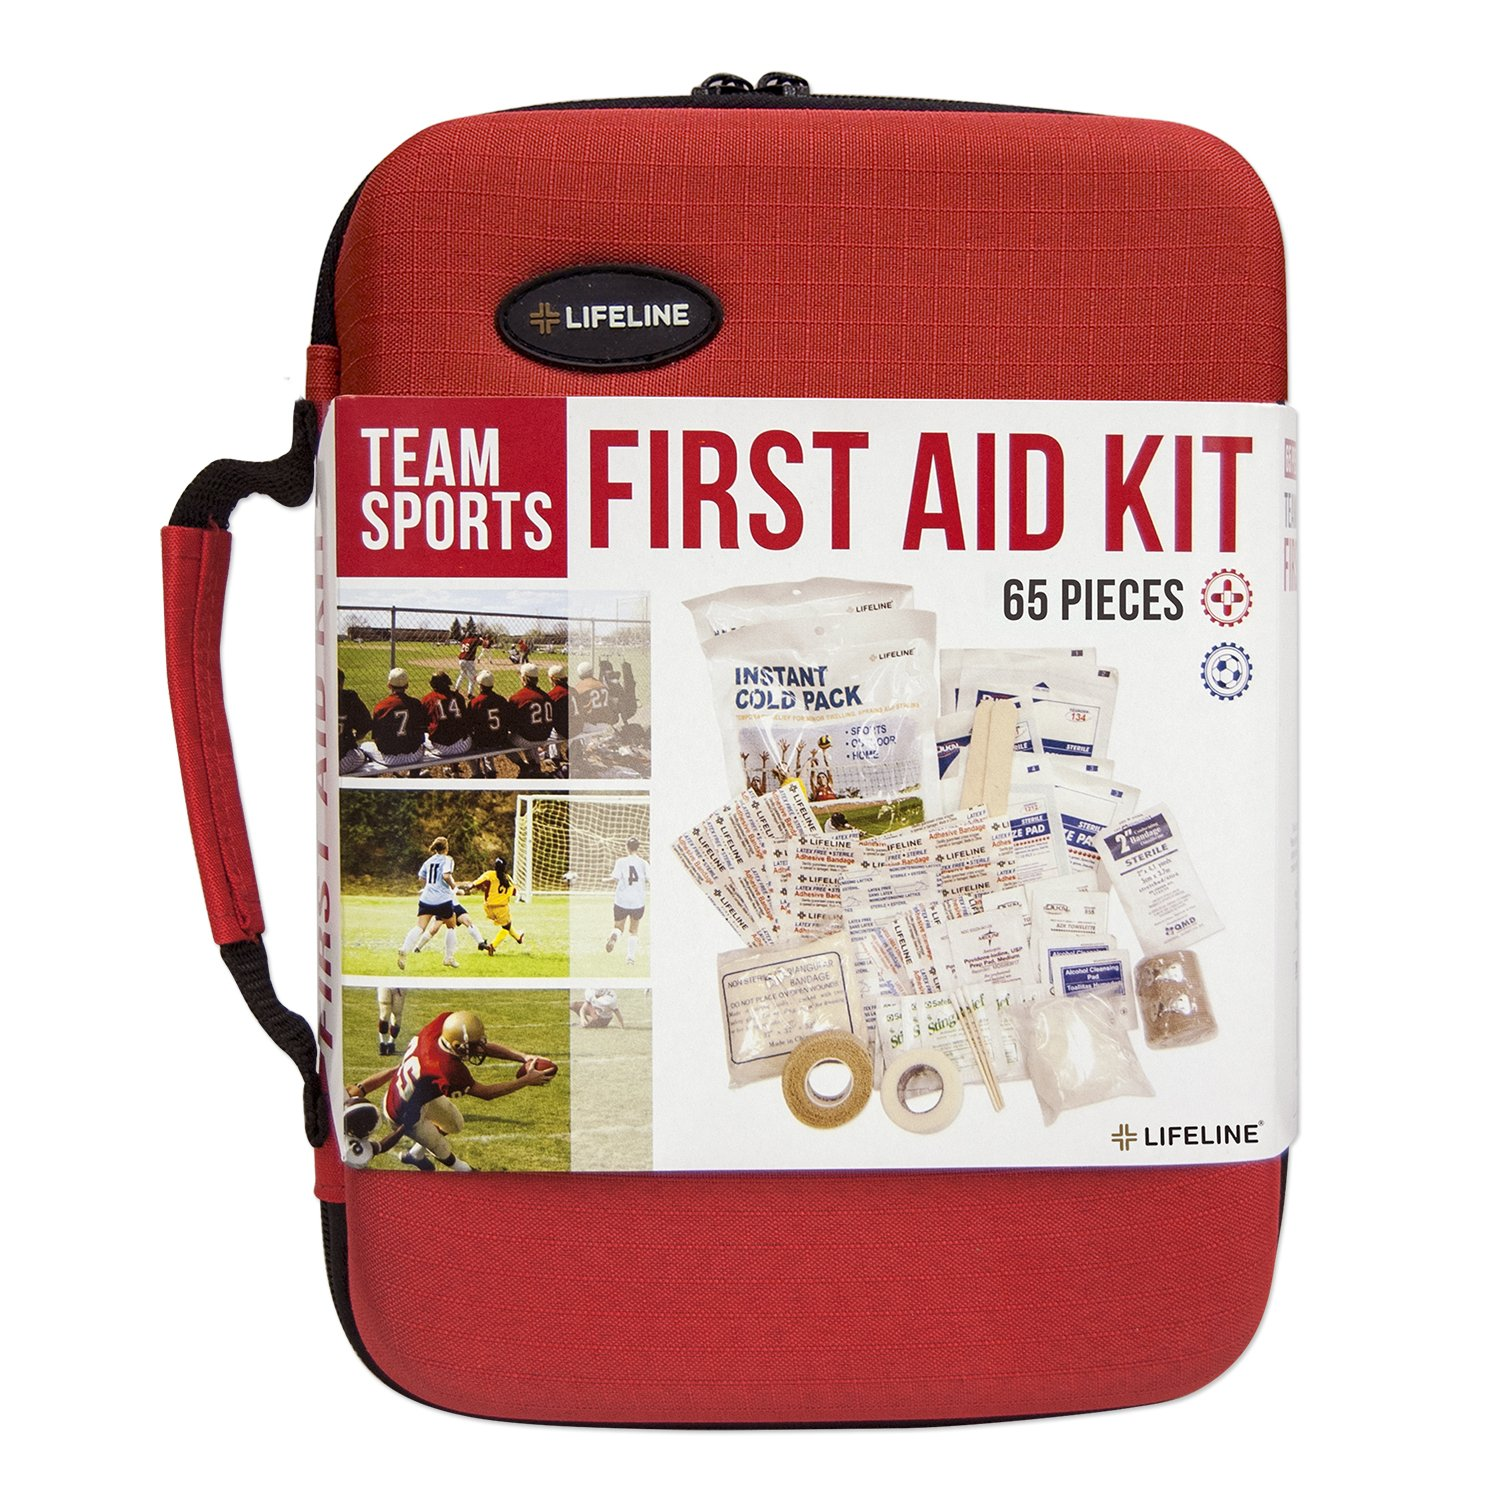 Lifeline Team Sport Trainer First Aid and Safety Kit, Stocked with Essential First aid Components for Emergencies Resulting from Outdoor and Team Sports Activities by Lifeline